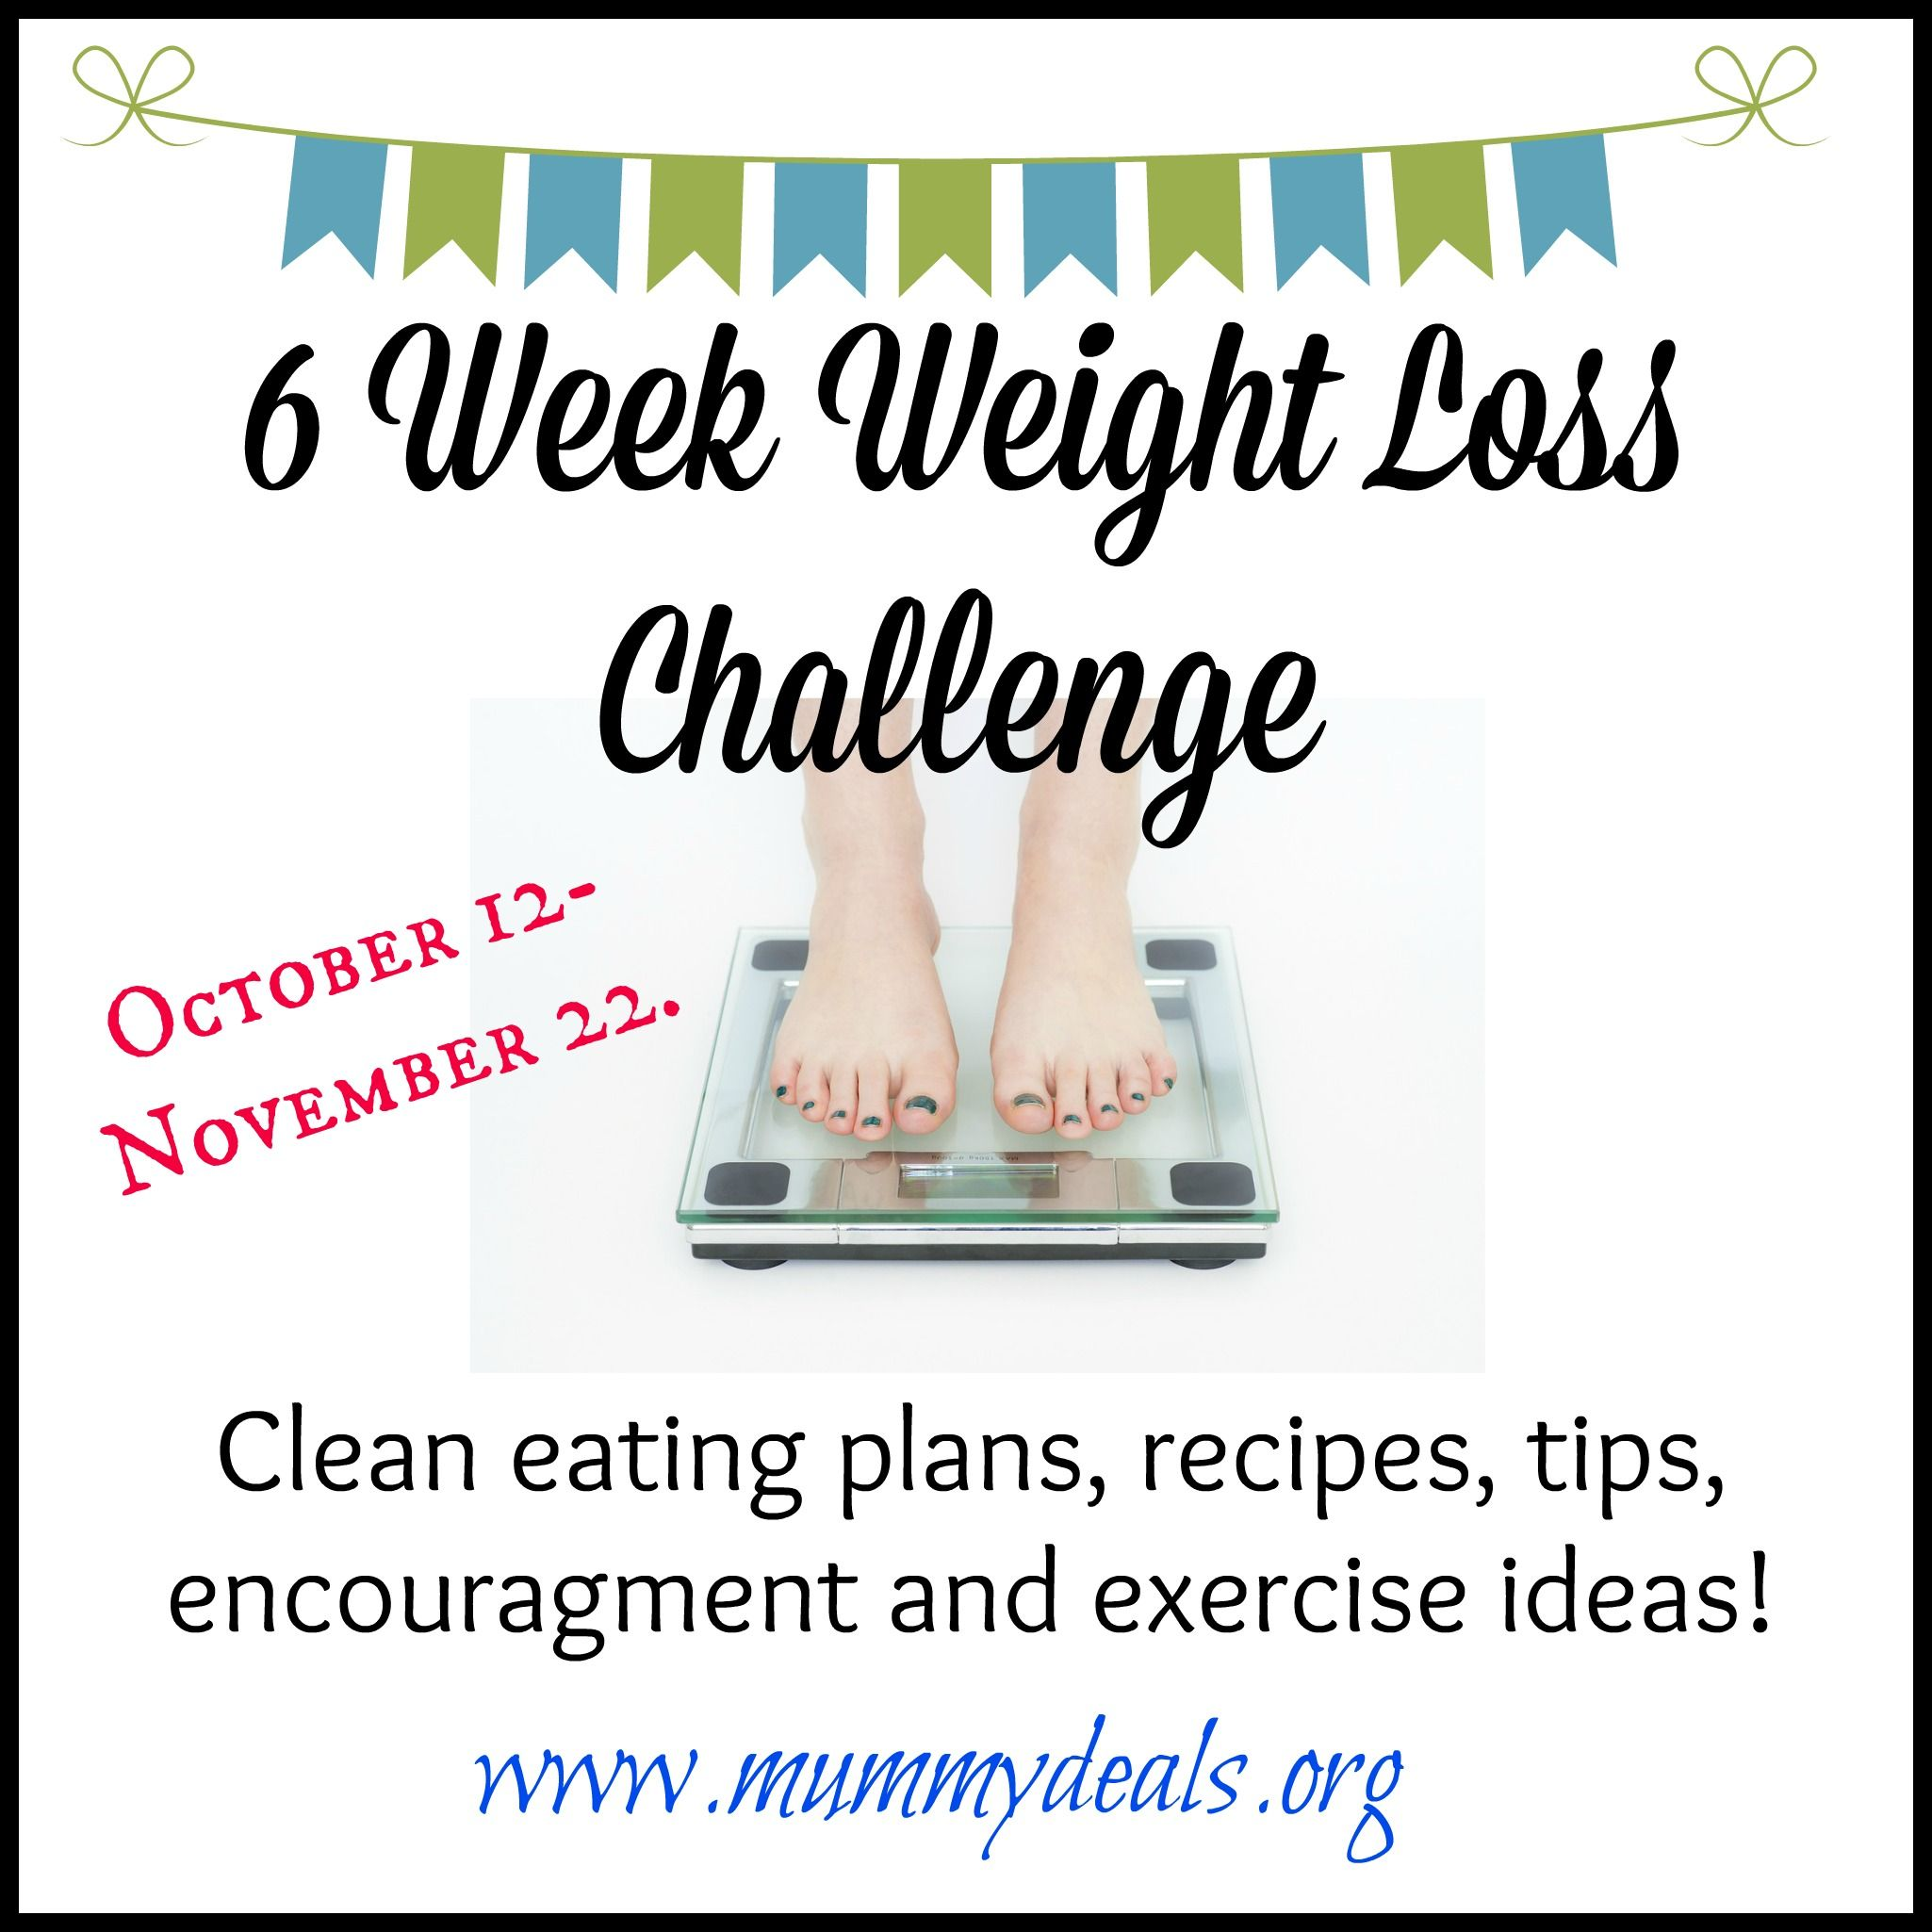 I asked recently in a Facebook group if anyone would want to do a weight loss challenge. I got bombarded by people wanting to get a spot on the challenge and honestly didn't quite anticipate it but that's why I thought some of you may want to join me! Join me today!